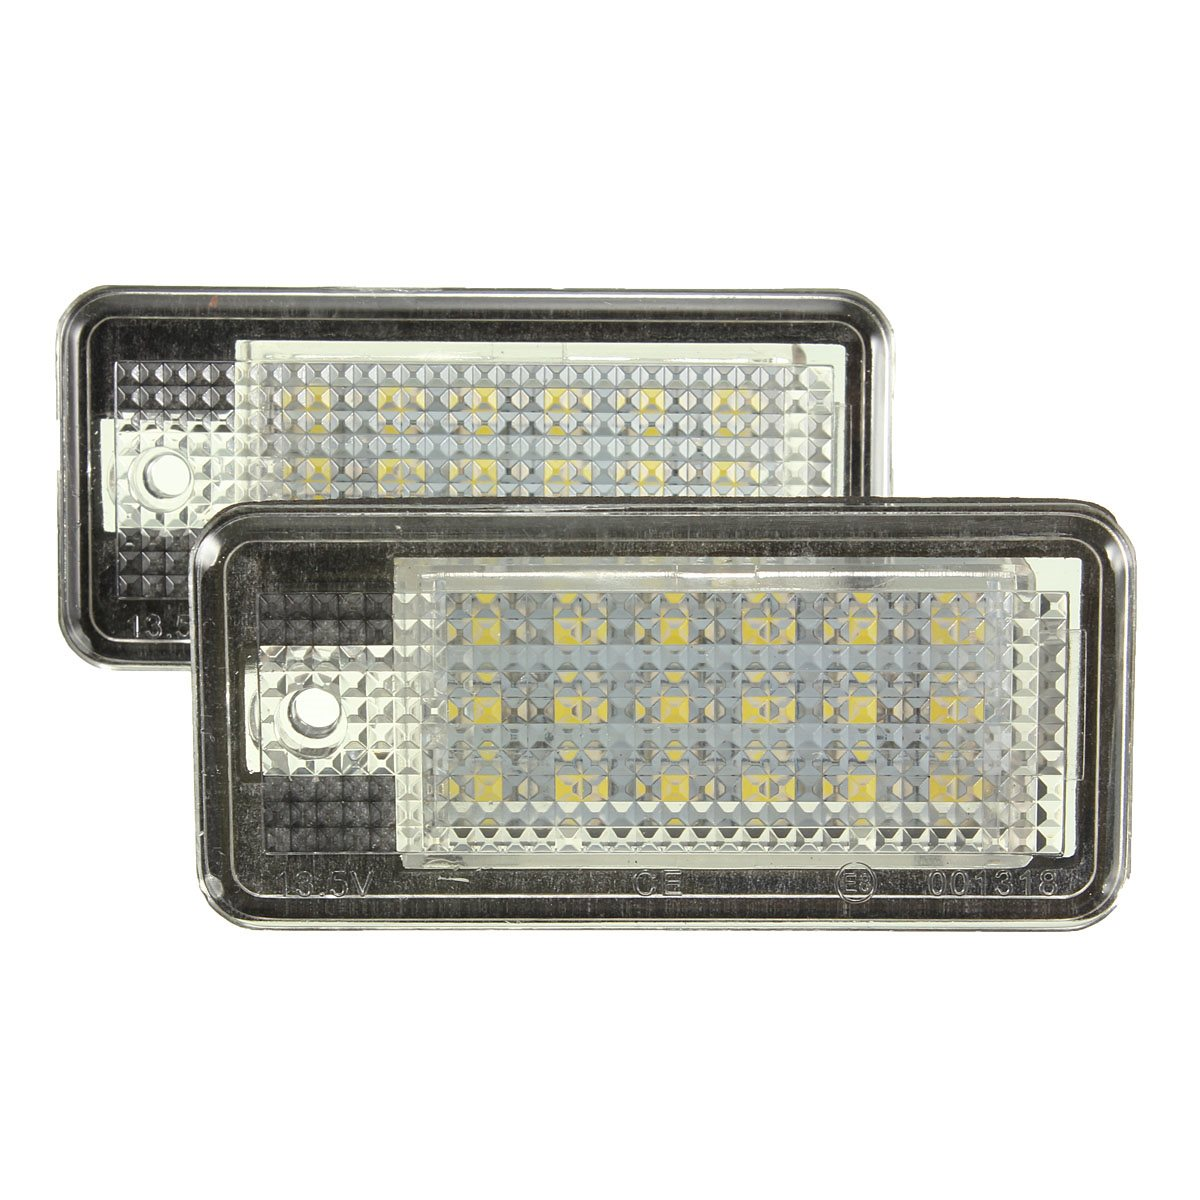 New 2 White Car Error 18 LED License Number Plate Light Lamp For Audi A3 S3 A4 S4 B6 B7 A6 S6 A8 Q7 0001108175 0986018340 458211 new starter for audi a4 a6 quattro volkswagen passat 2 8 3 0 4 2 l